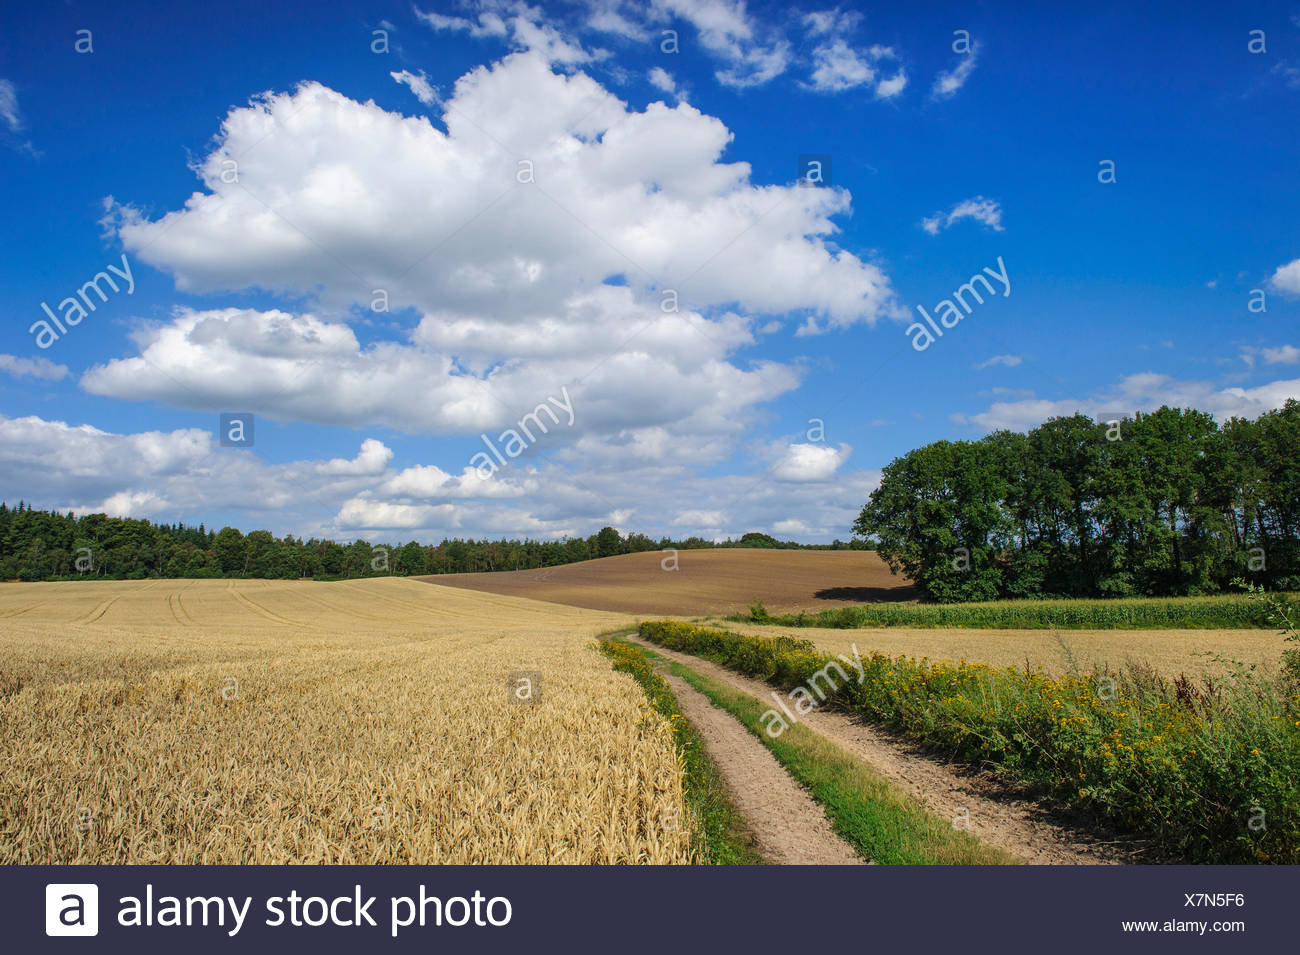 wheatfield in summer, Germany, Lower Saxony, Oldenburger Muensterland, Dammer Berge - Stock Image